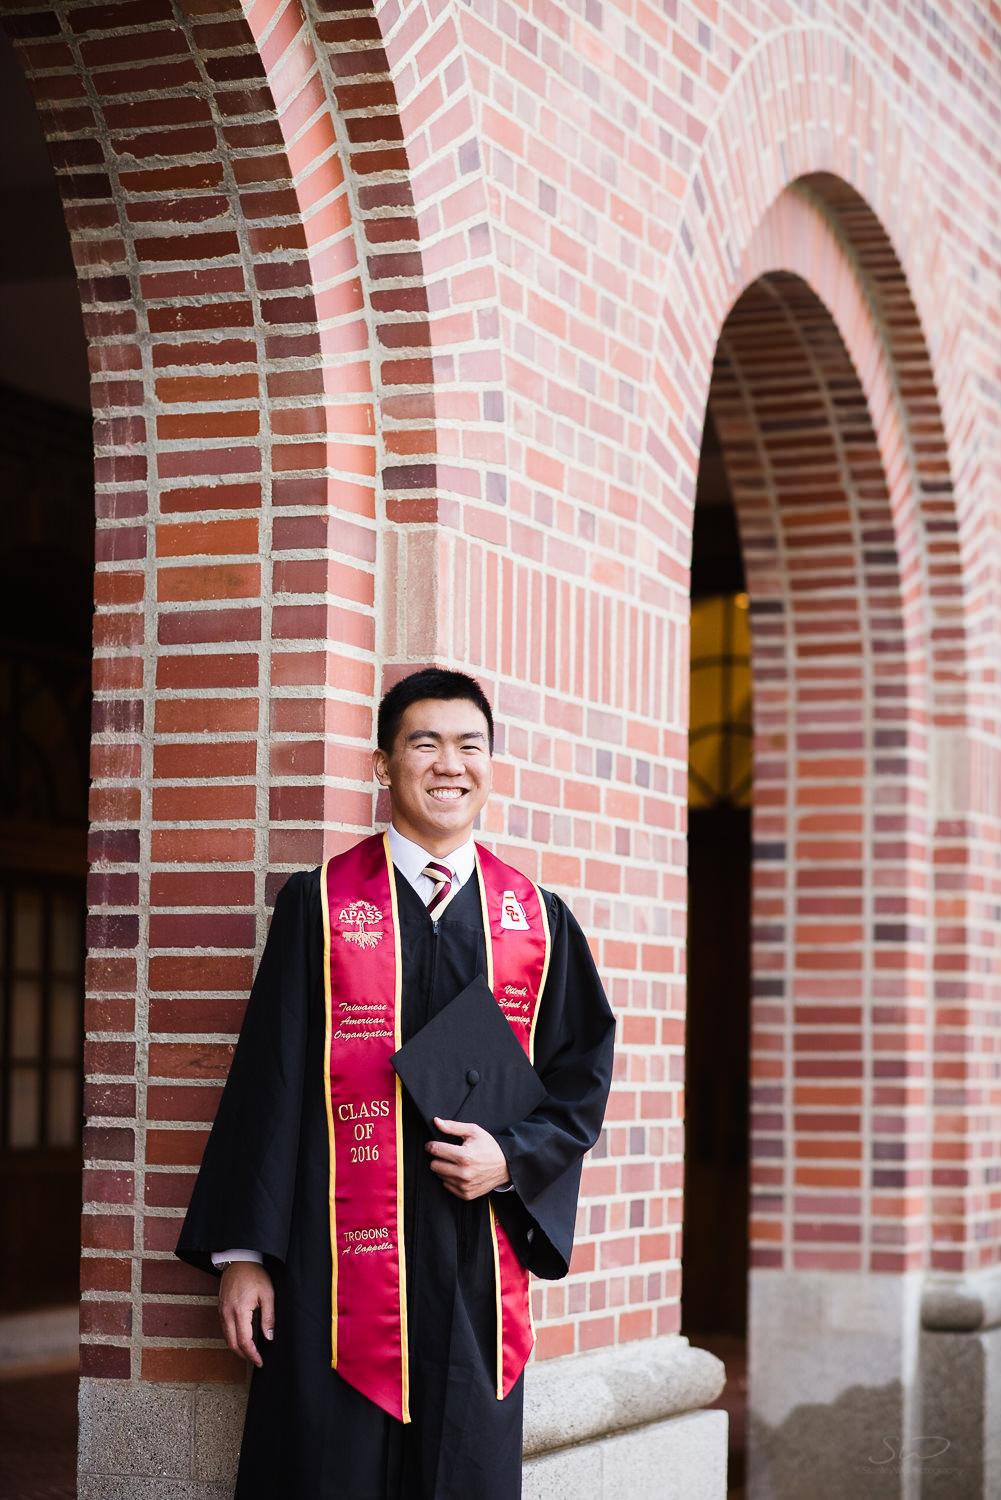 USC college senior graduate in cap and gown by Stanley Wu Photography | Portrait & Wedding Photographer serving Los Angeles, Orange County, and Southern California